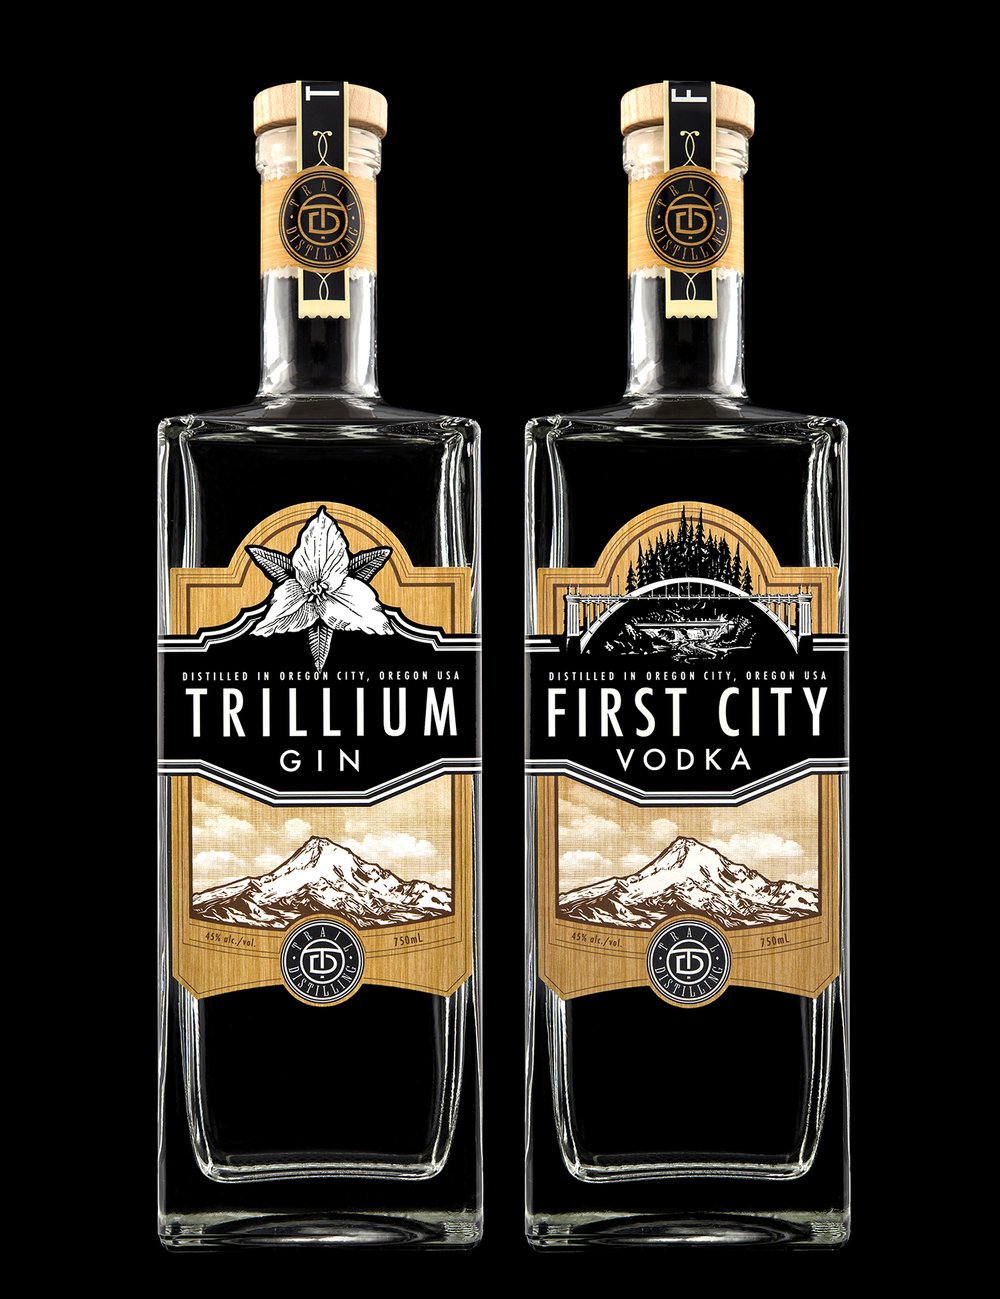 Branding and Packaging Design for Trail Distilling